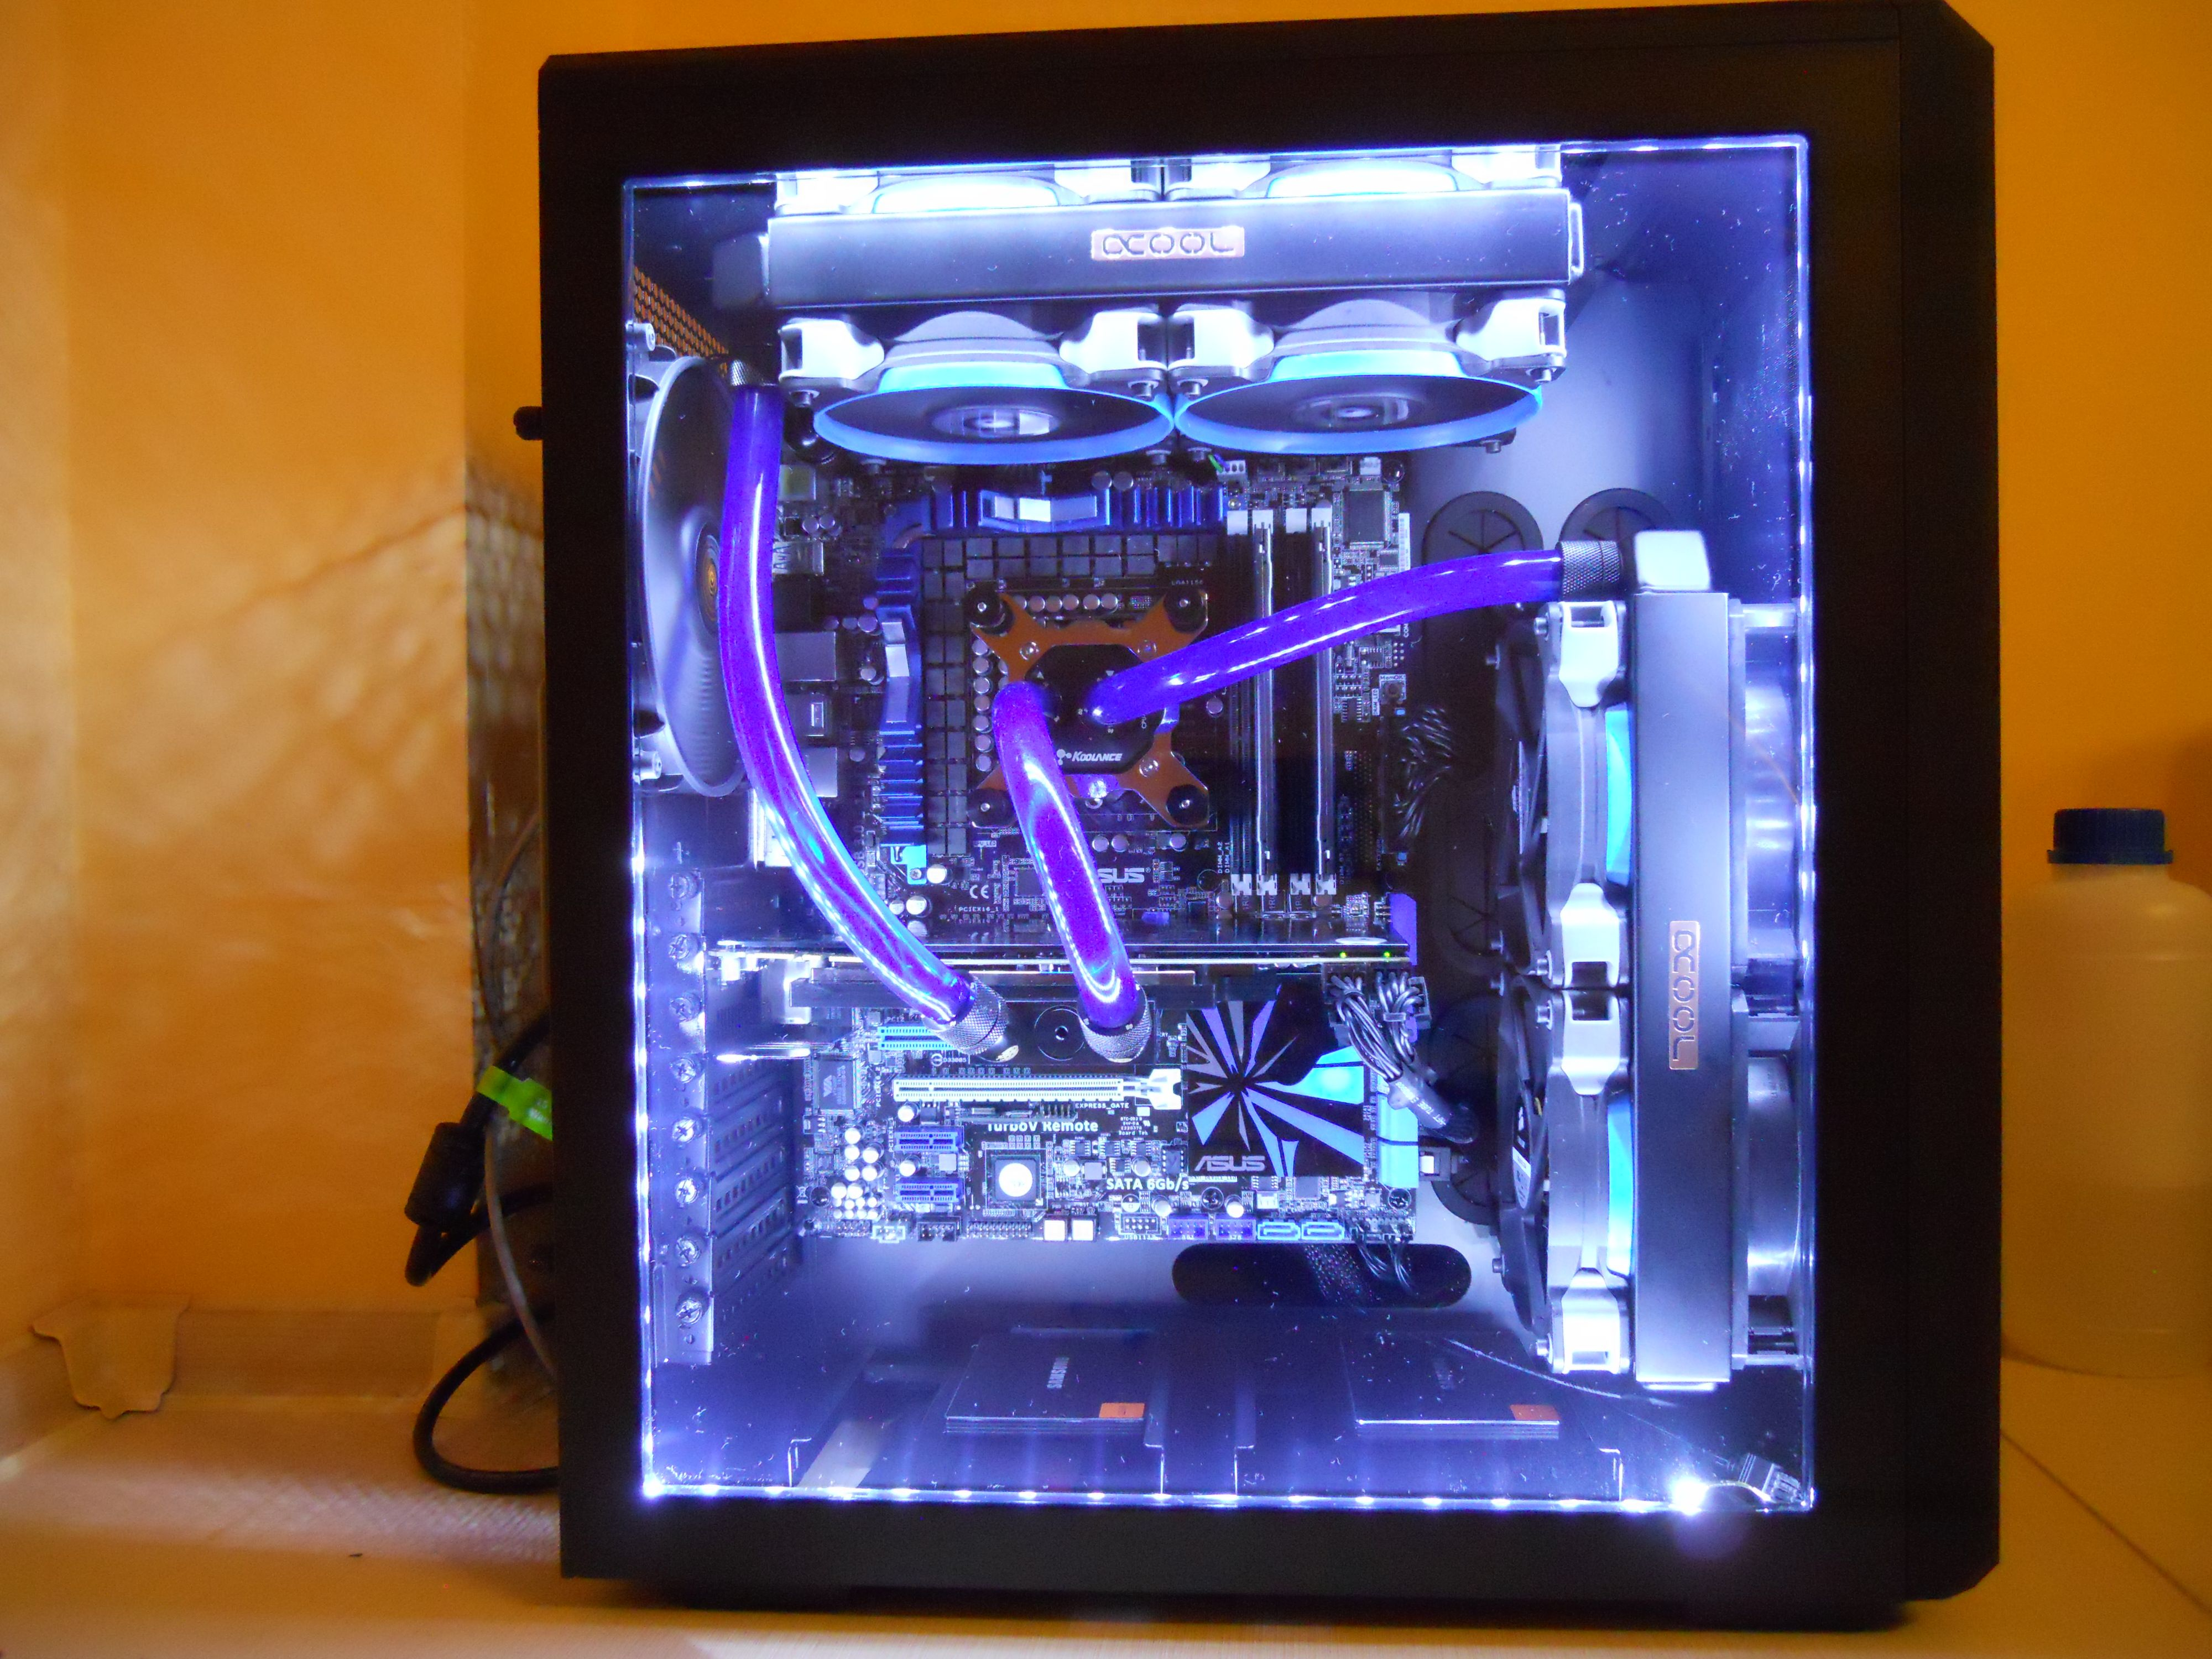 Corsair Carbide 540 Watercooled Pc Pinterest Light Up Circuit Board Lamp Neatorama Computers Gaming Videogames Games